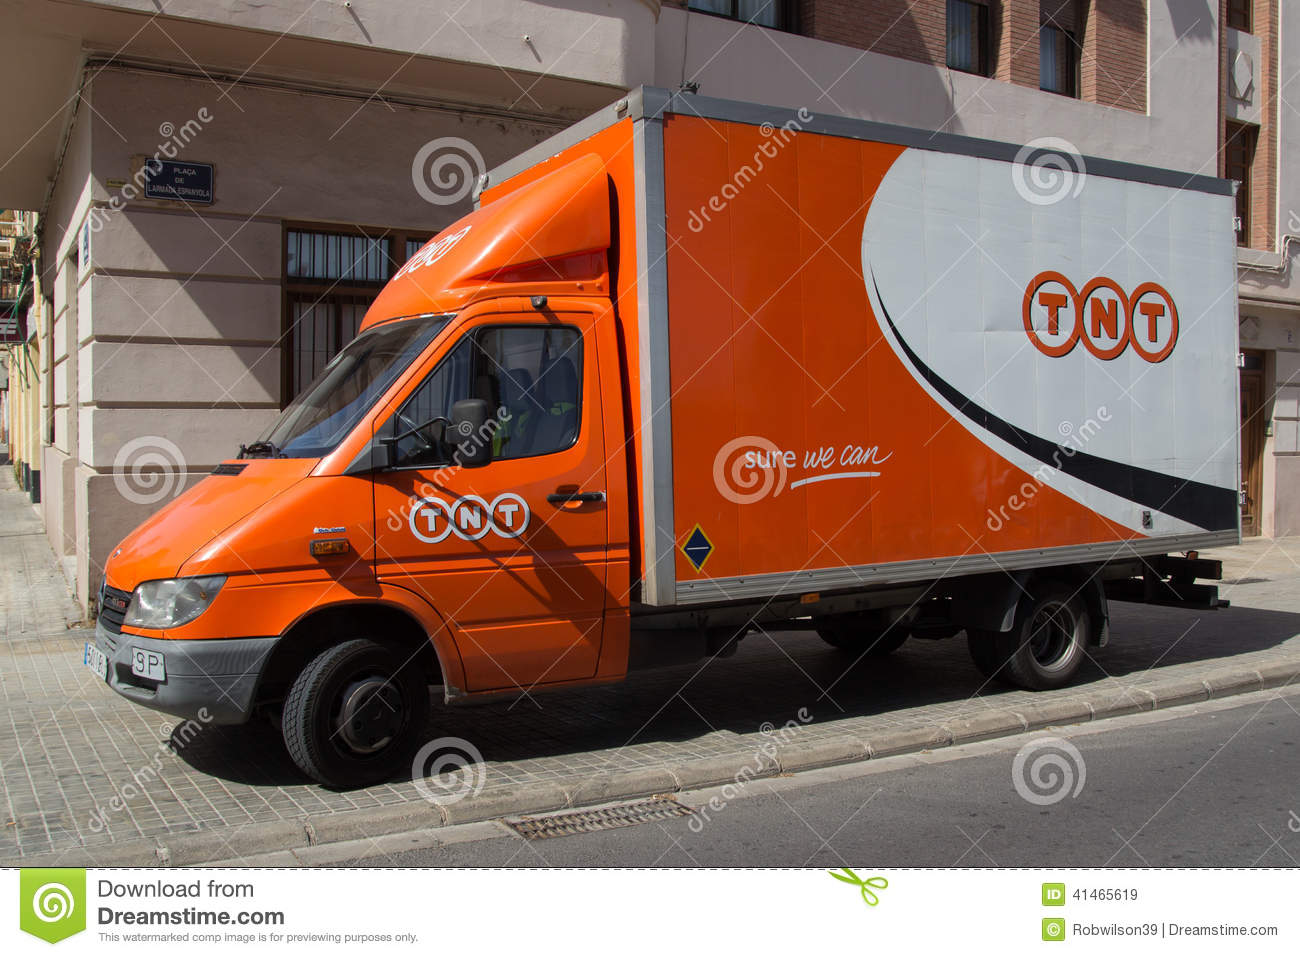 Tnt Auto Sales >> TNT Express Editorial Stock Image - Image: 41465619